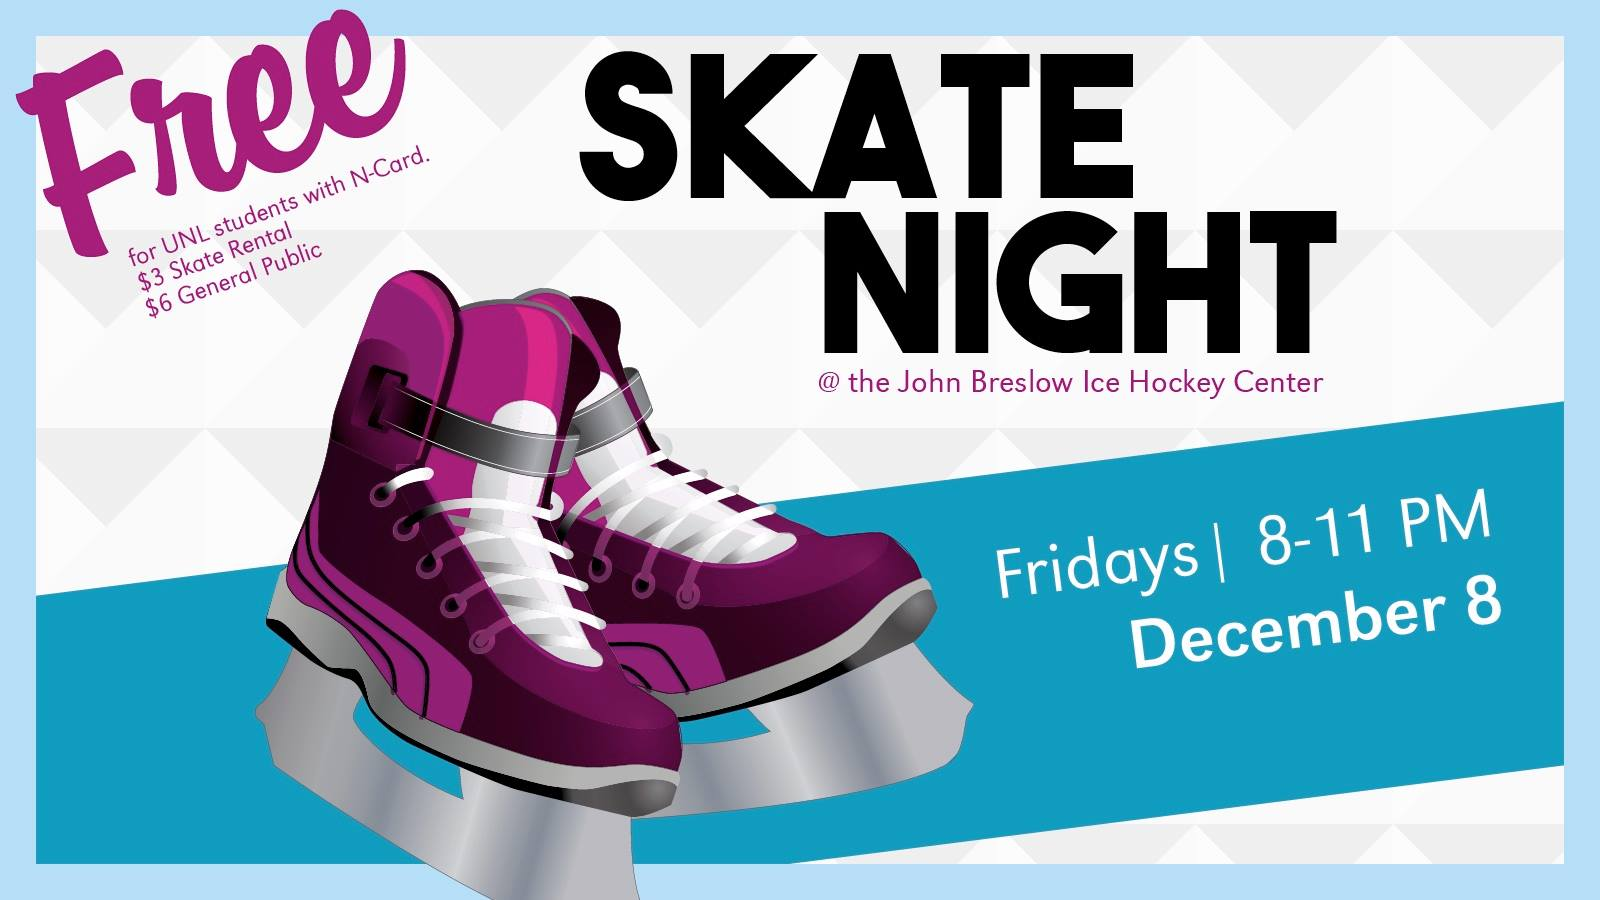 Free skate night sponsored by Campus Recreation